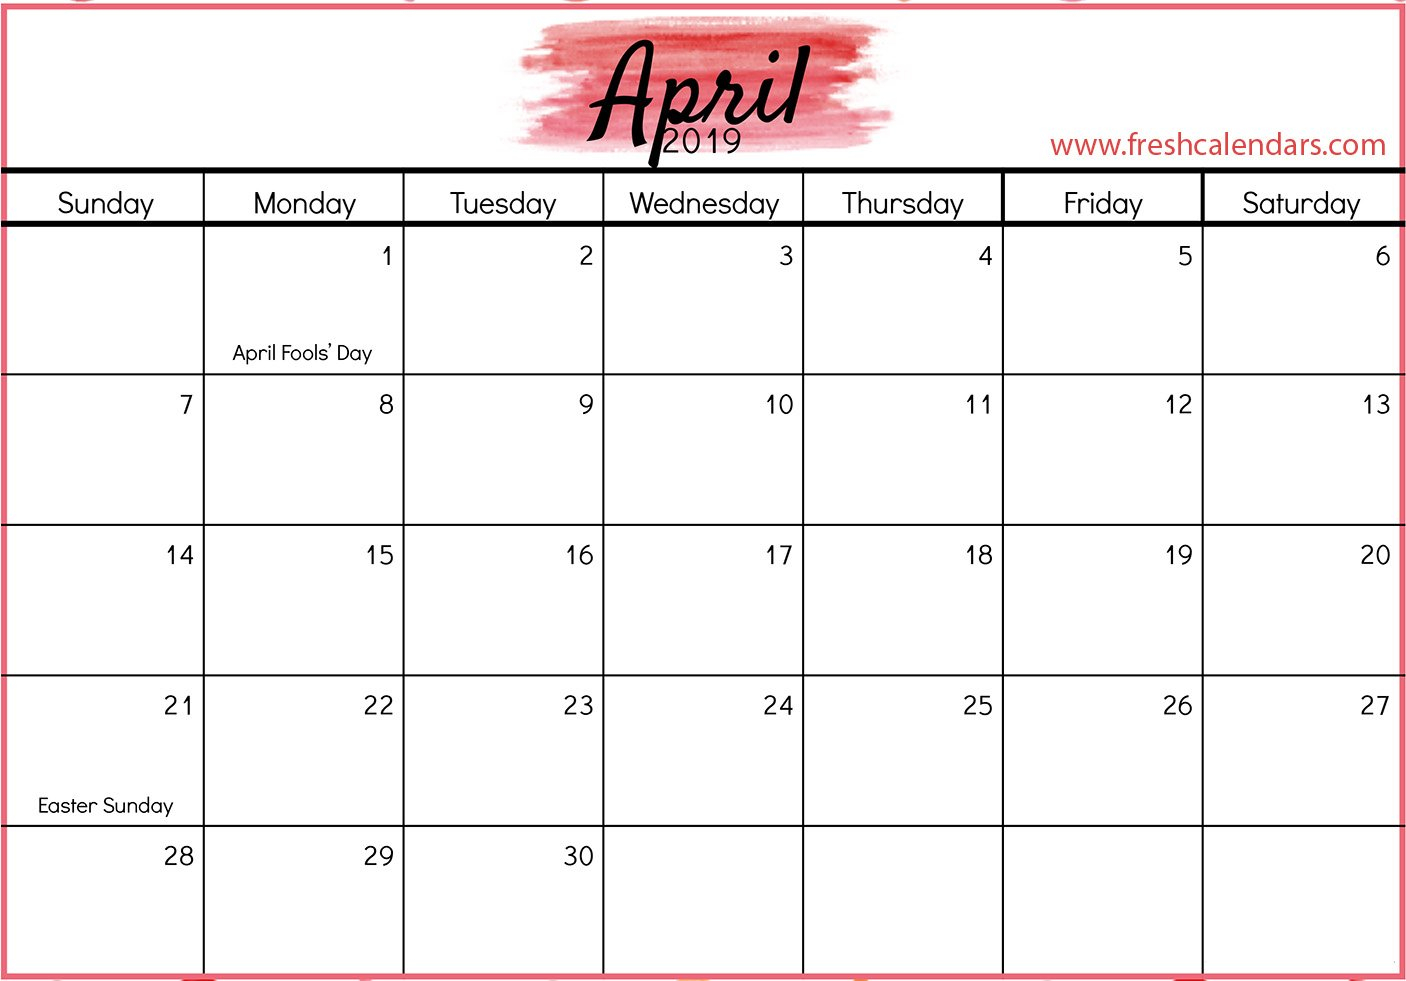 April 2019 Calendar Printable - Fresh Calendars A Calendar For April 2019